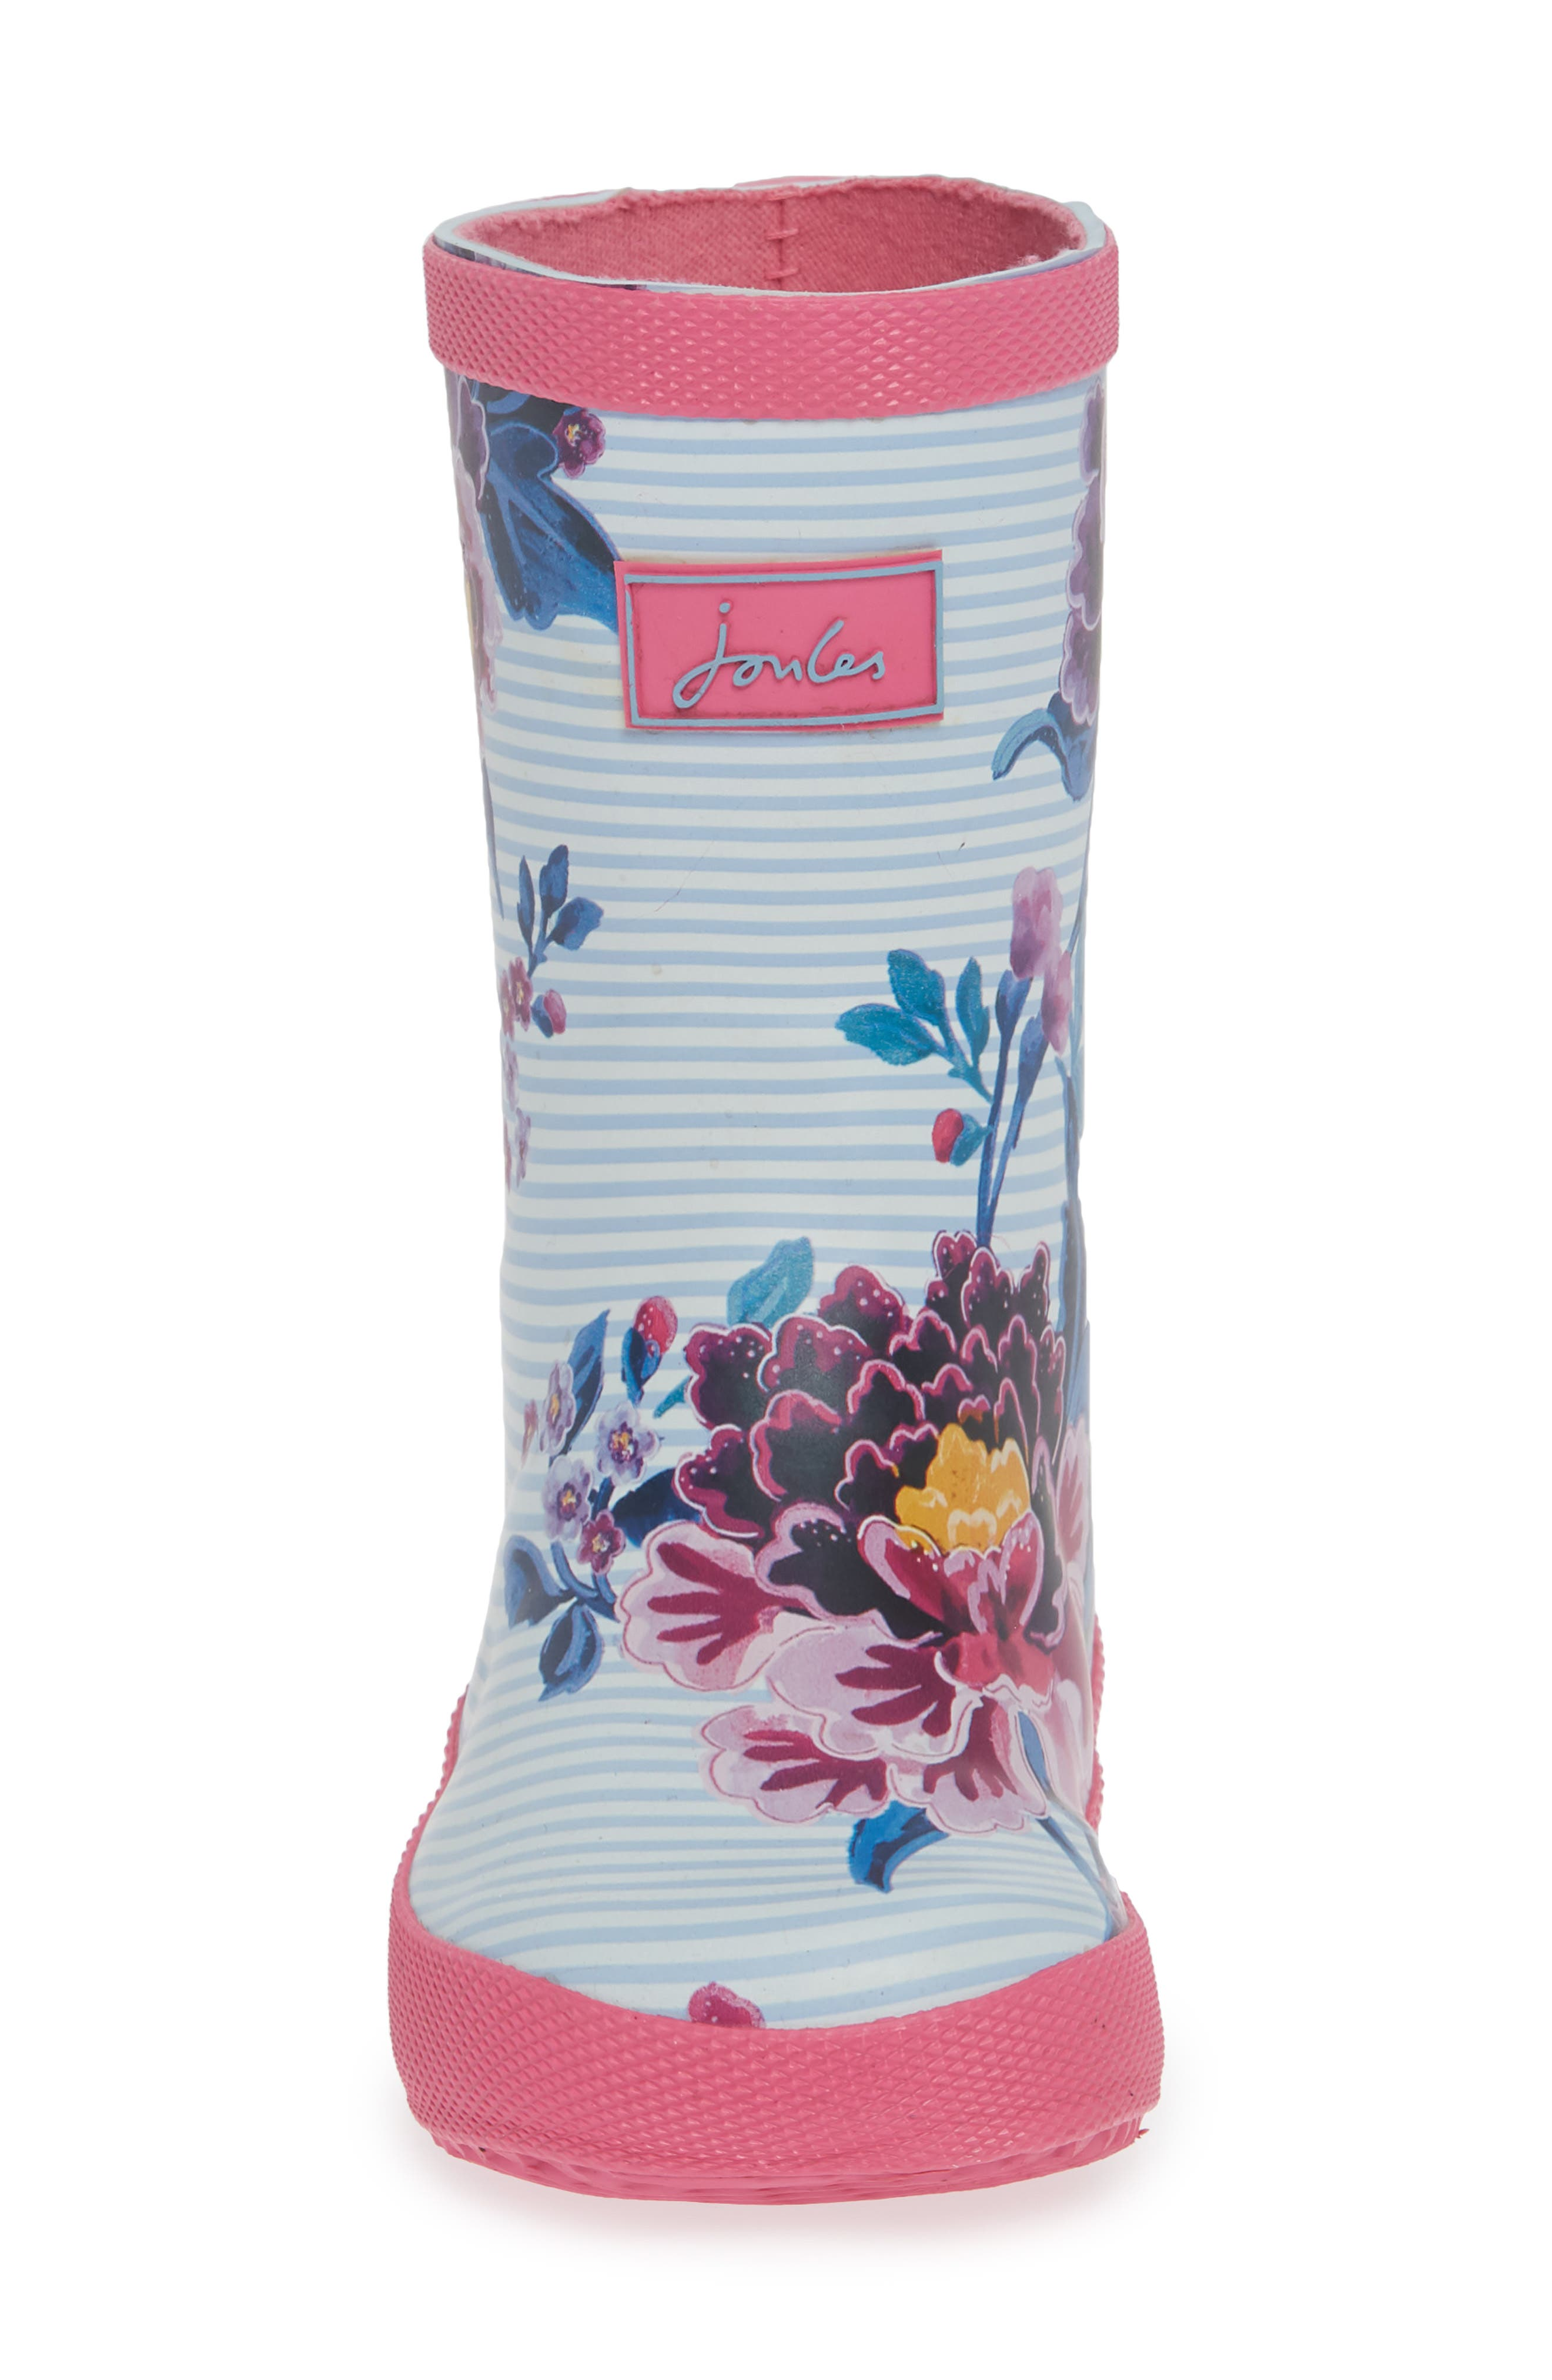 Baby Welly Print Waterproof Boot,                             Alternate thumbnail 8, color,                             Sky Blue Chinoiserie Floral